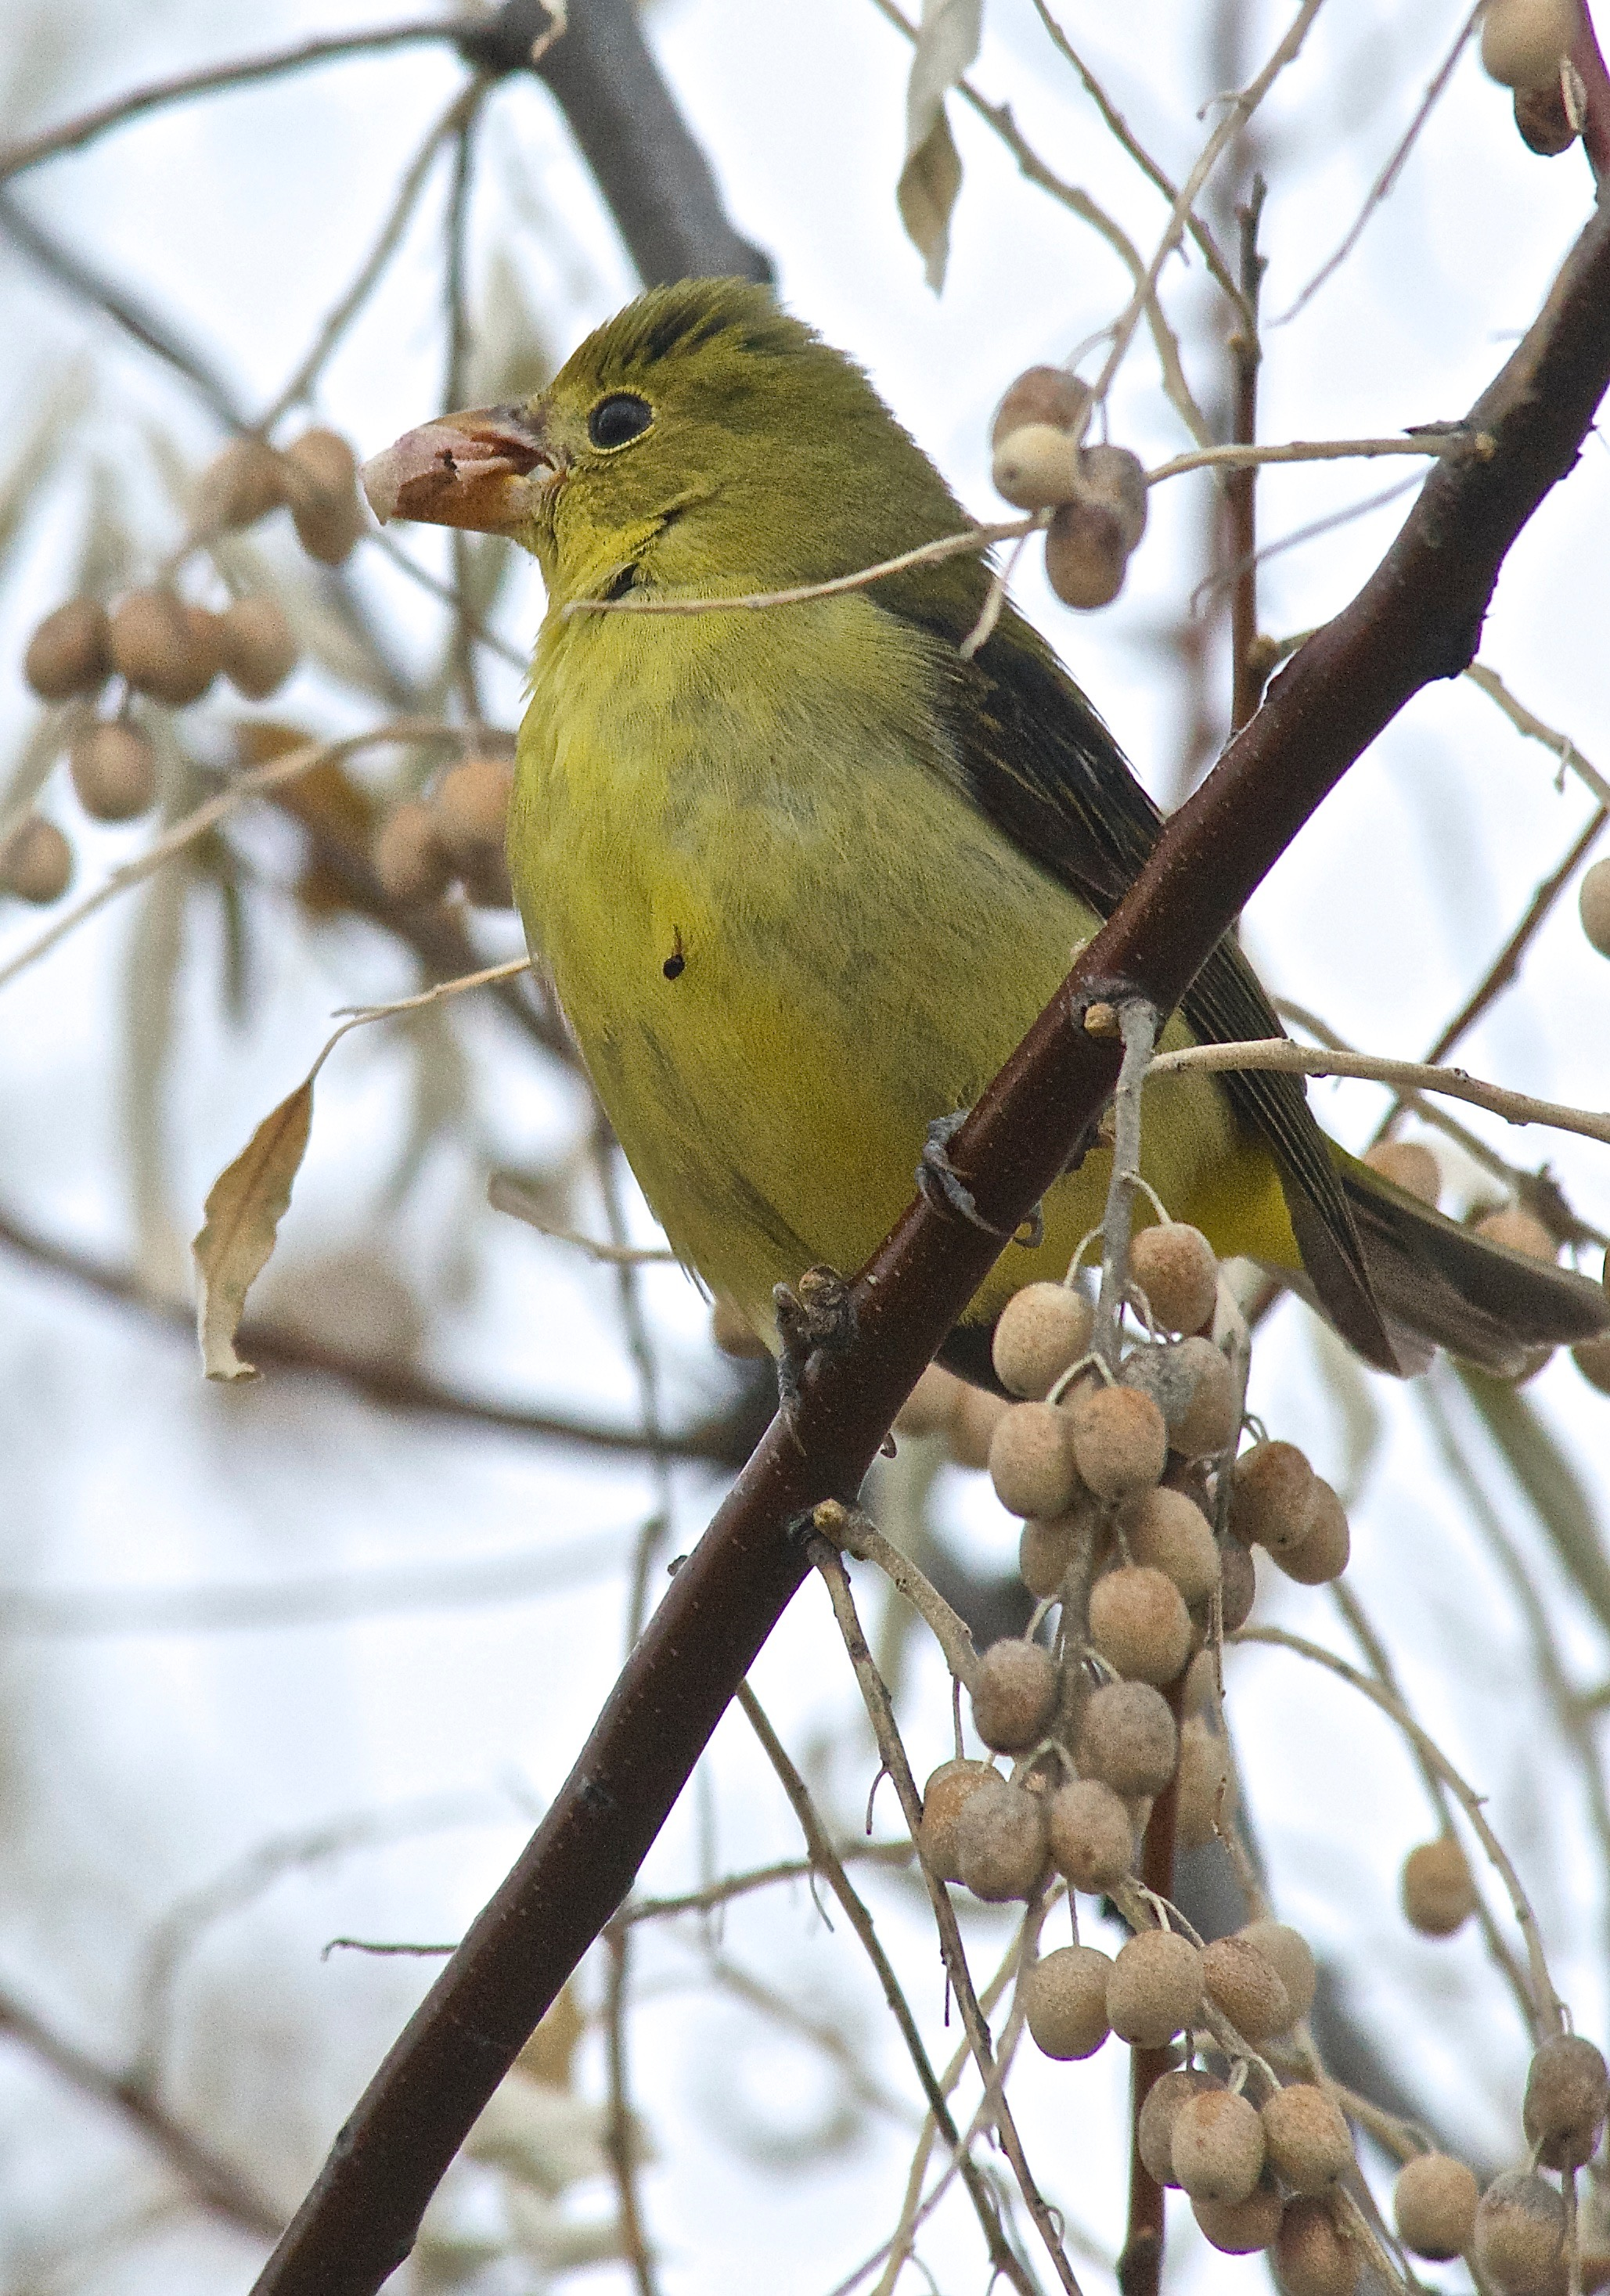 Scarlet Tanager ♀ (immature)